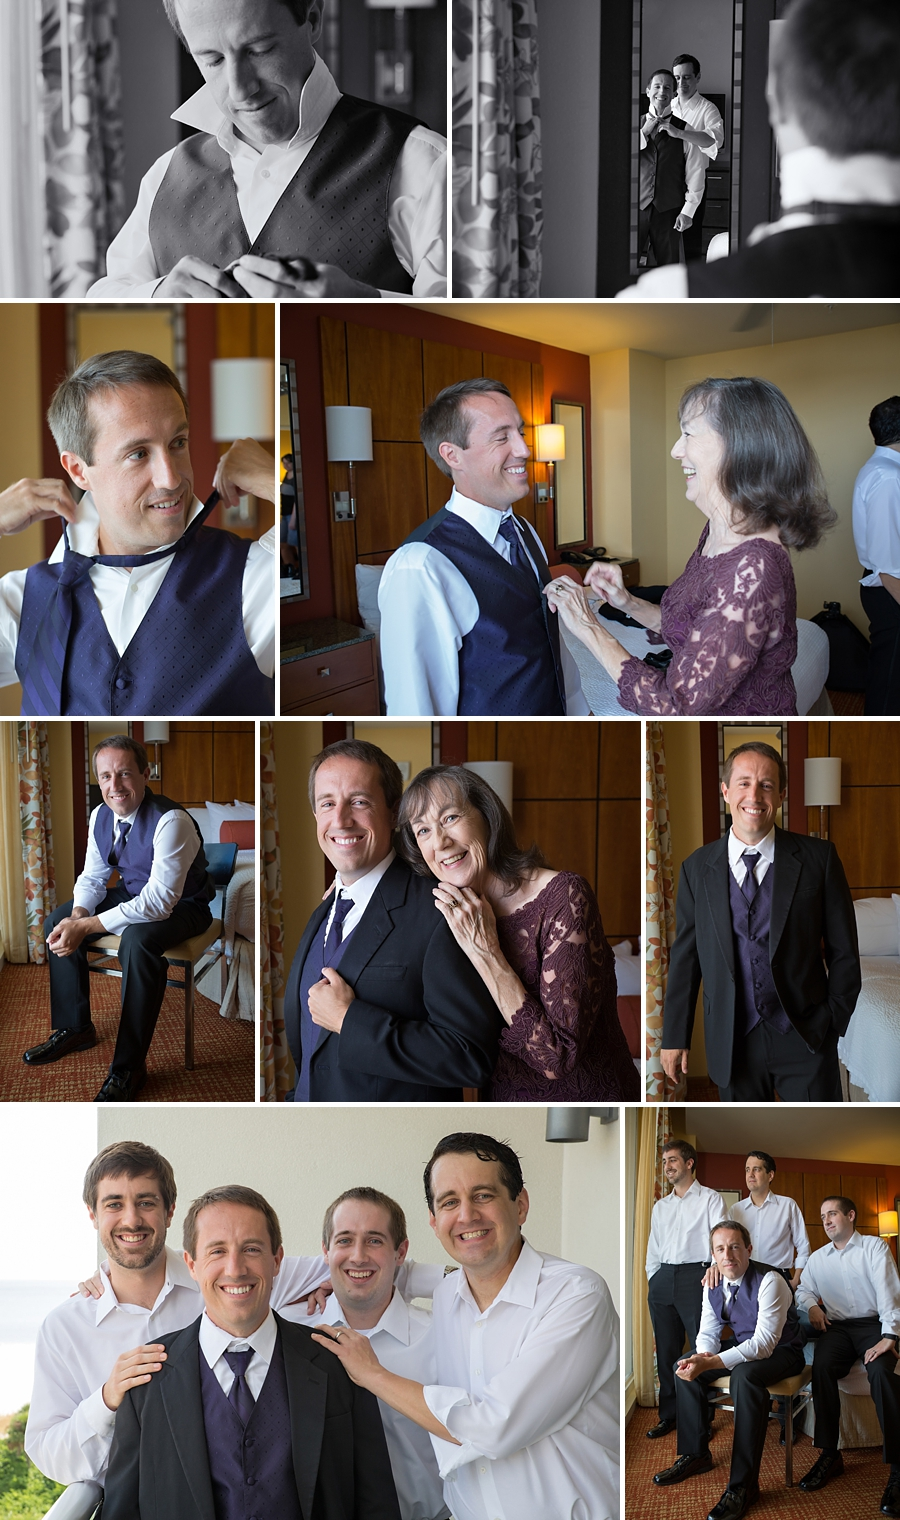 Images of the groom getting ready